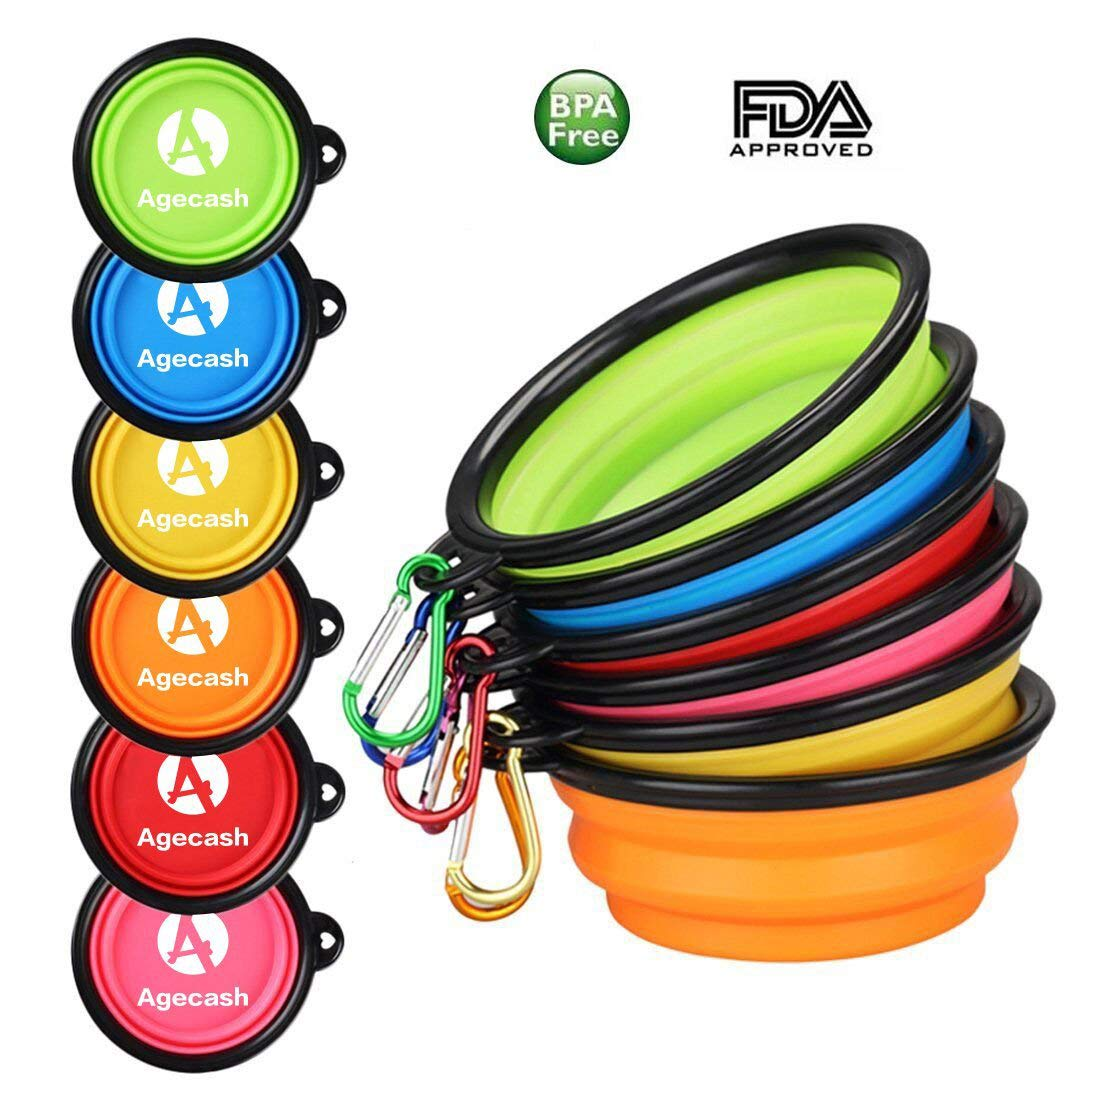 Agecash Collapsible Dog Bowl,6 Pack Silicone Portable travel dog bowls with Carabiner Clip, For Dog Cat Bowls-With 6-Color Set